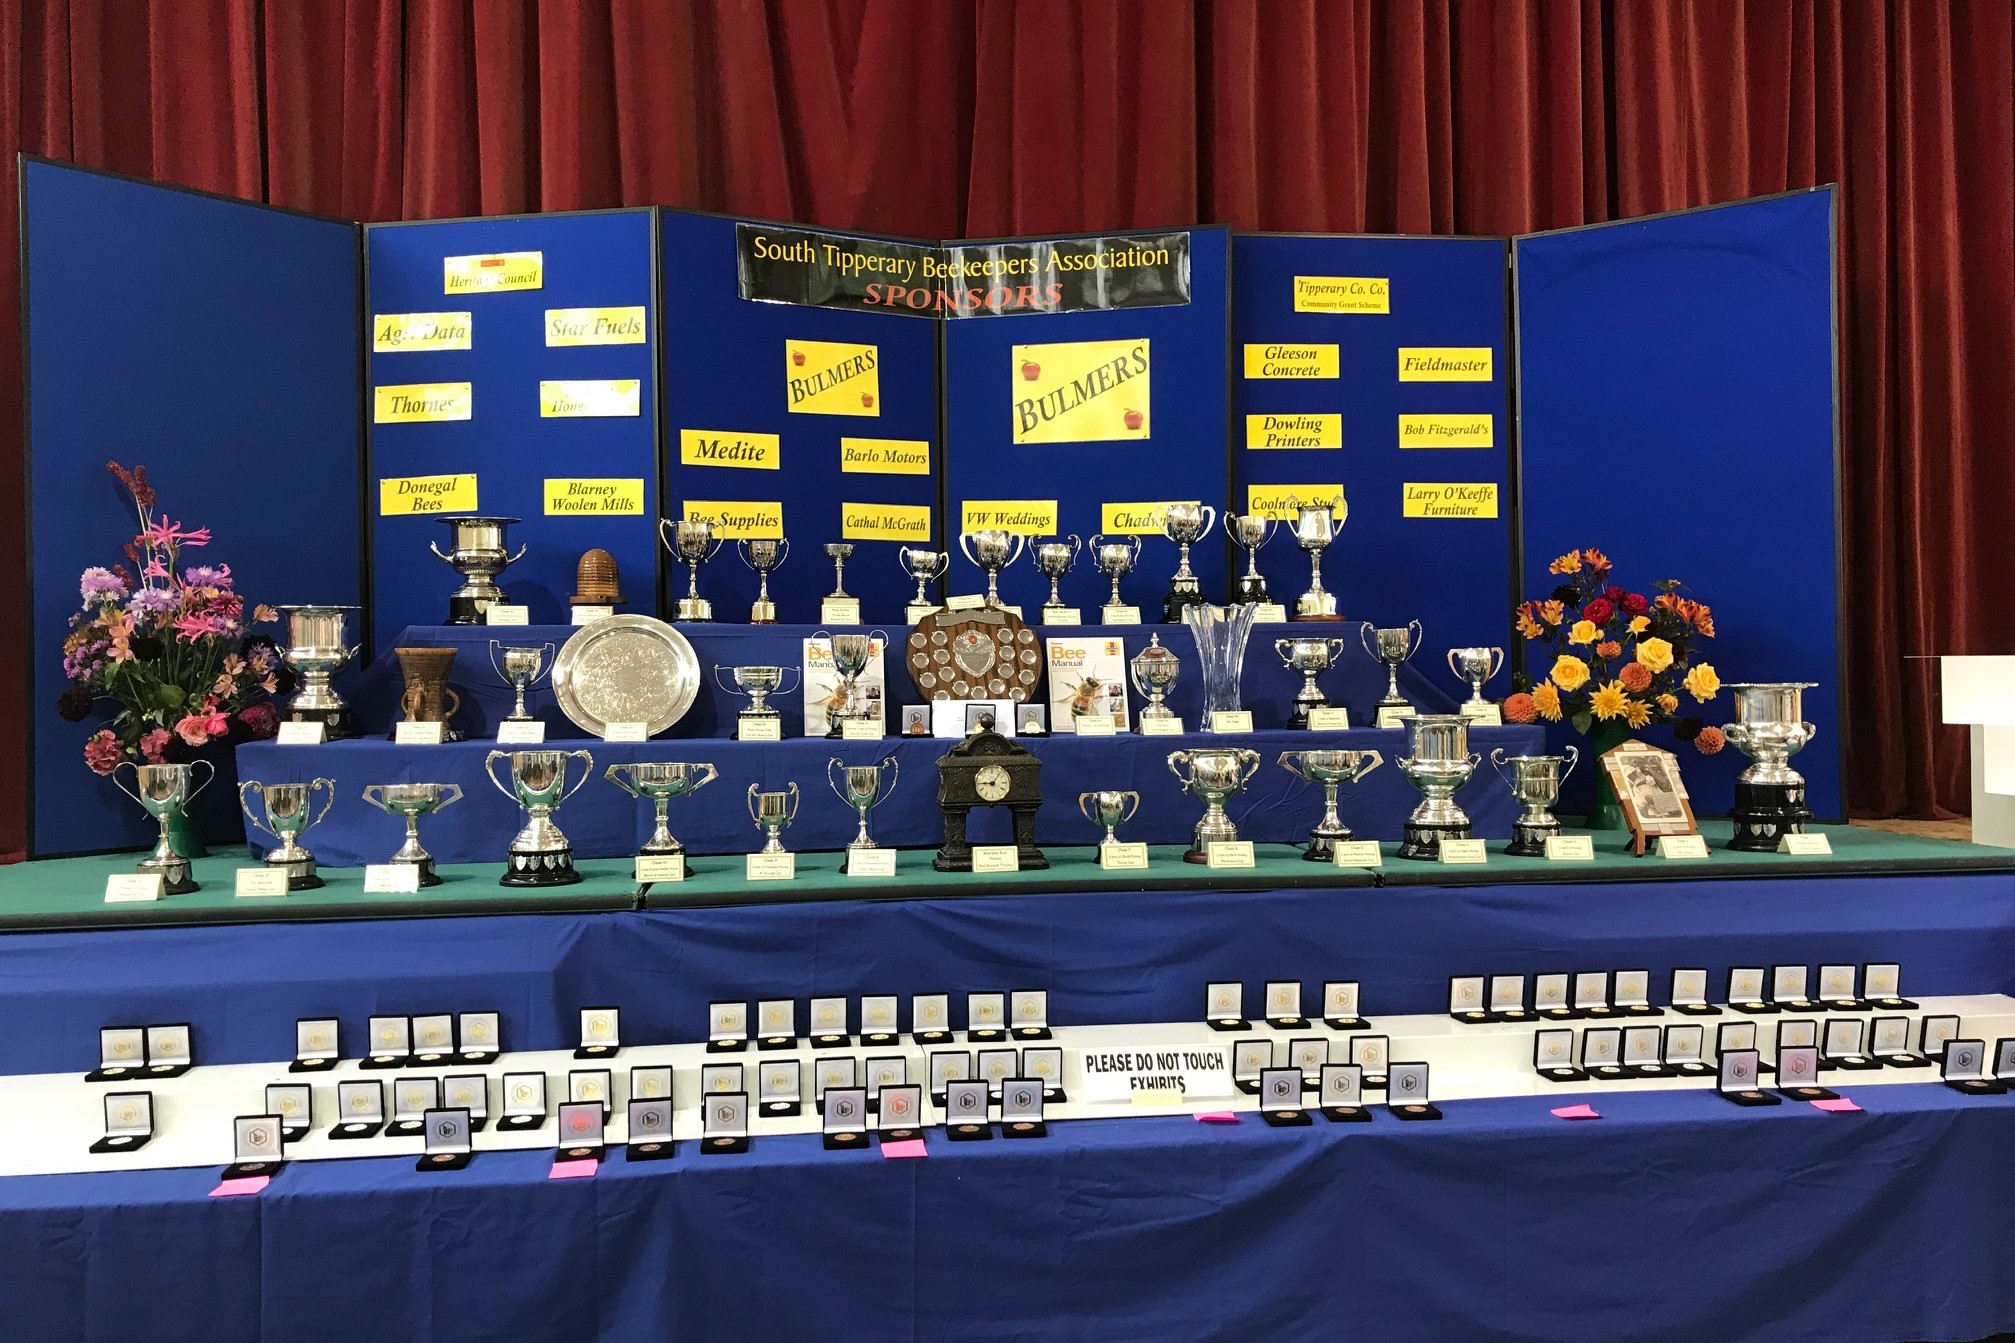 Winners' Cups & Medals display